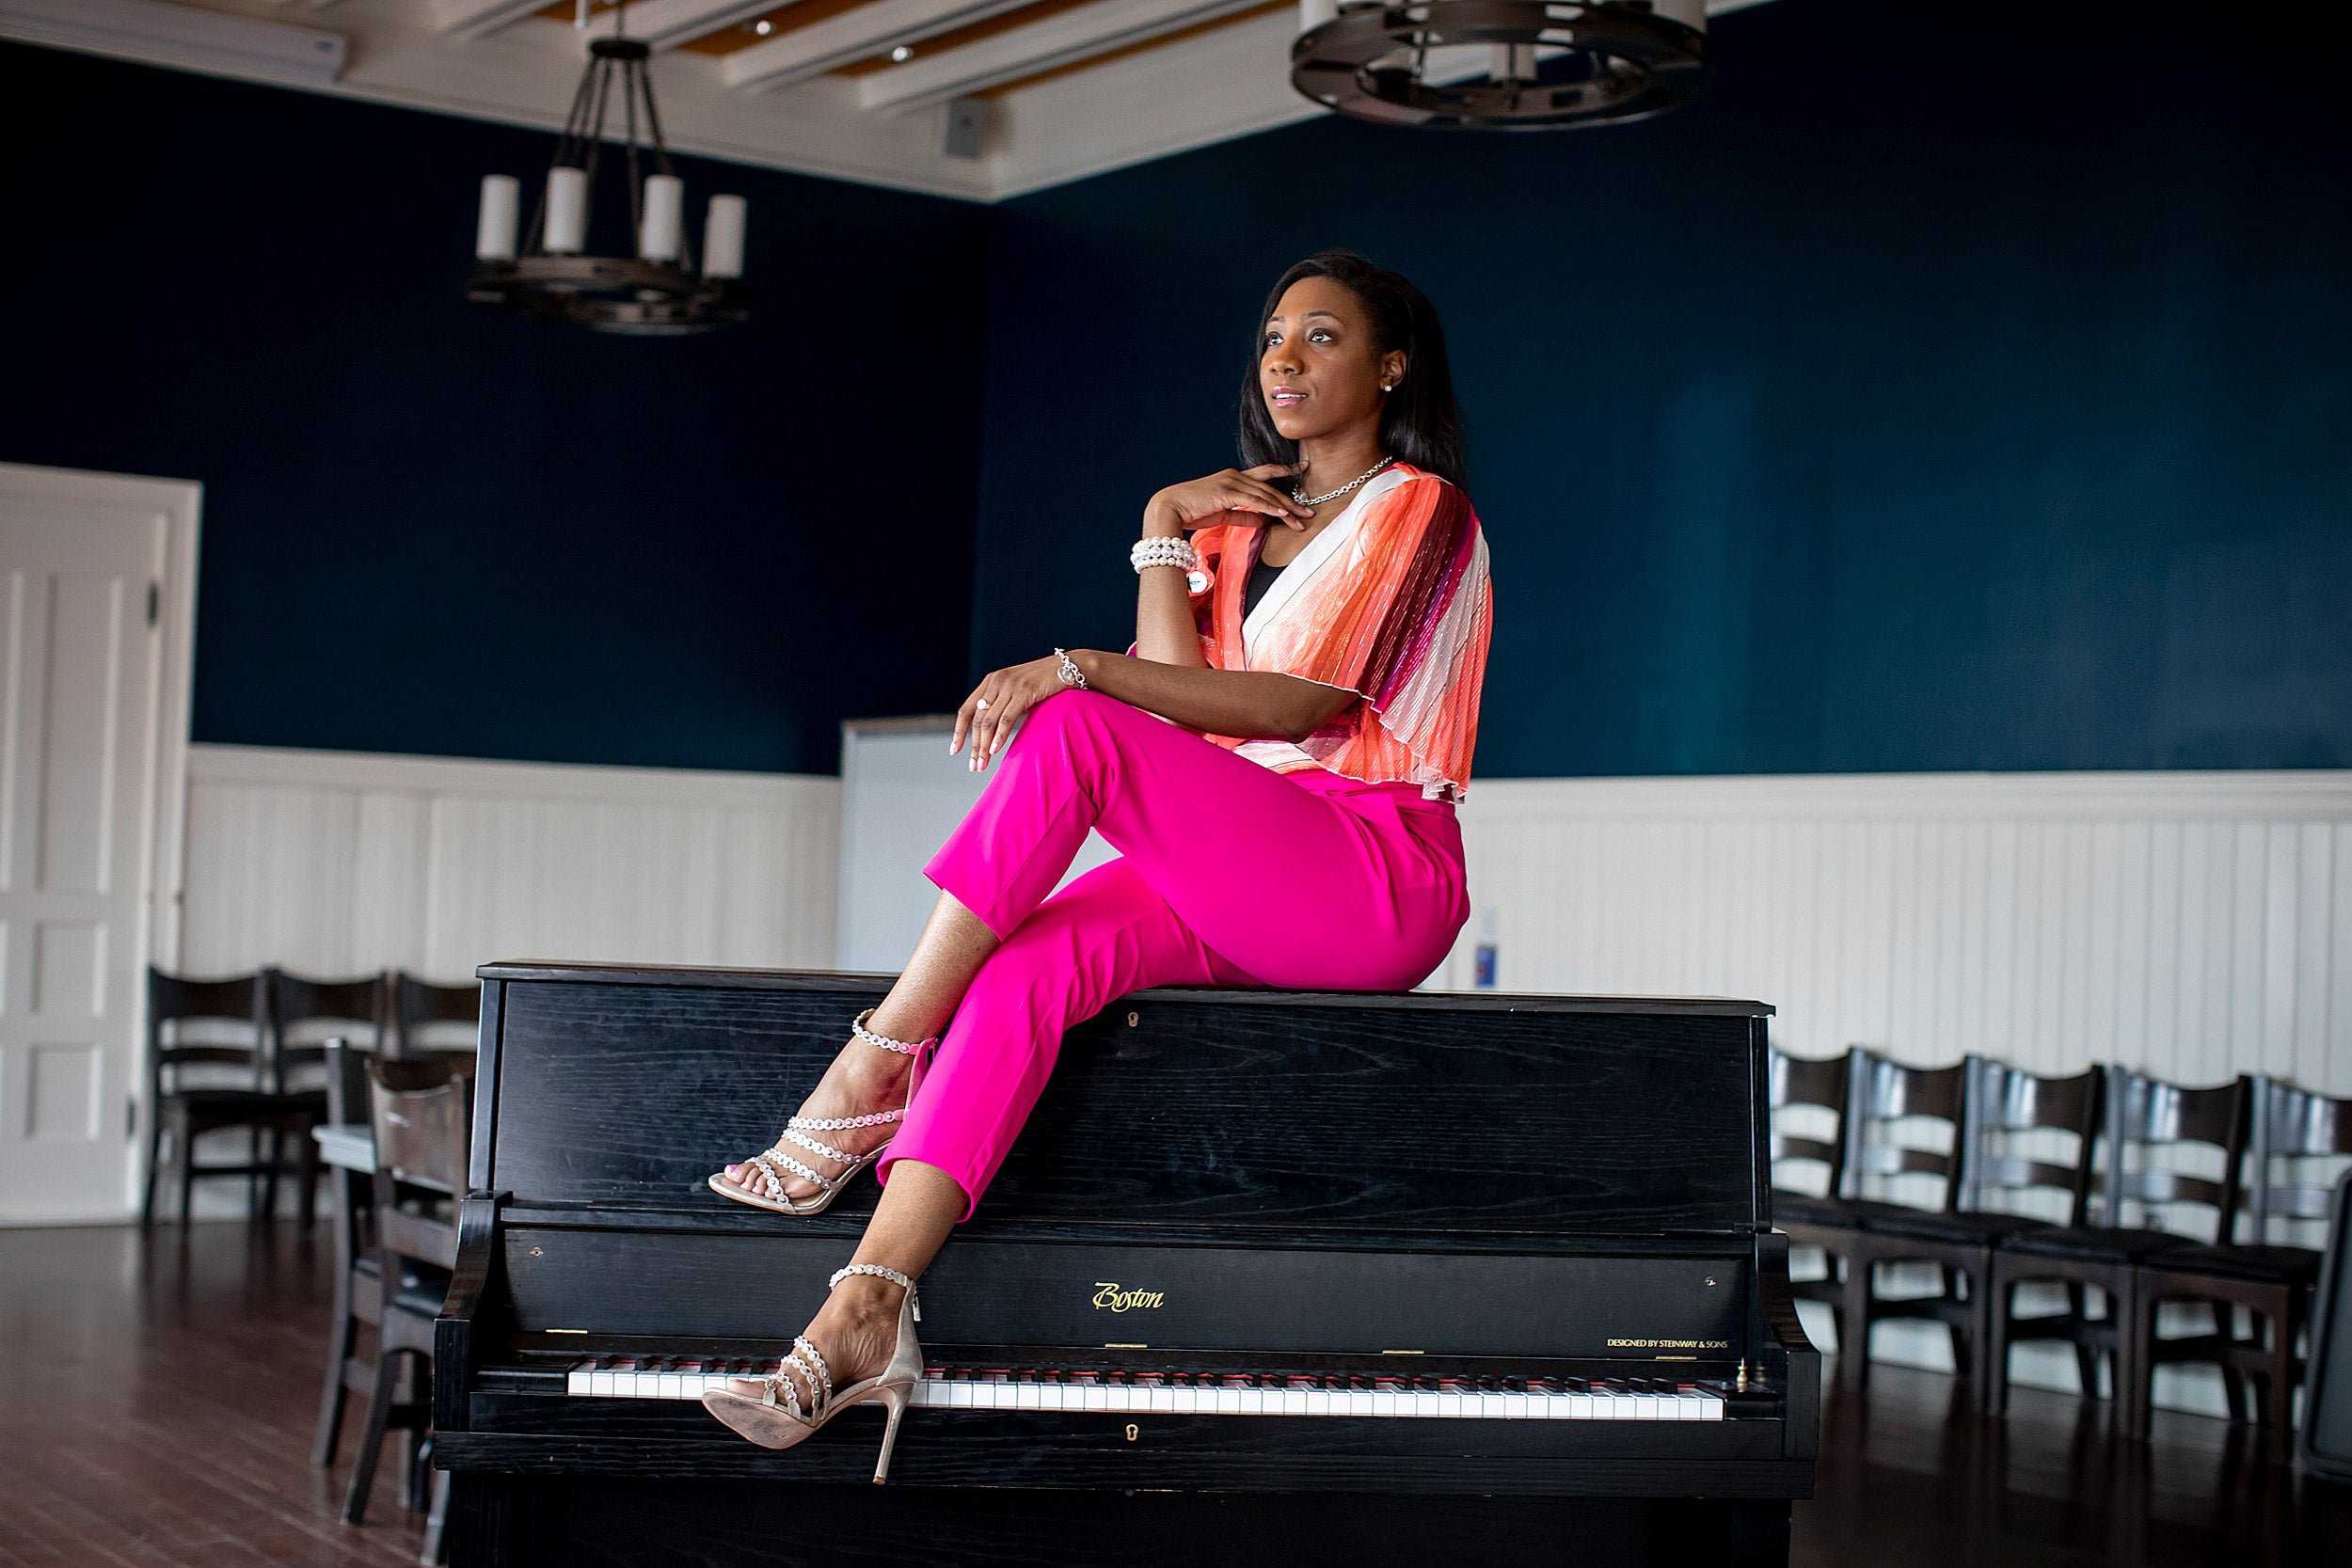 La'Toya sitting on a piano